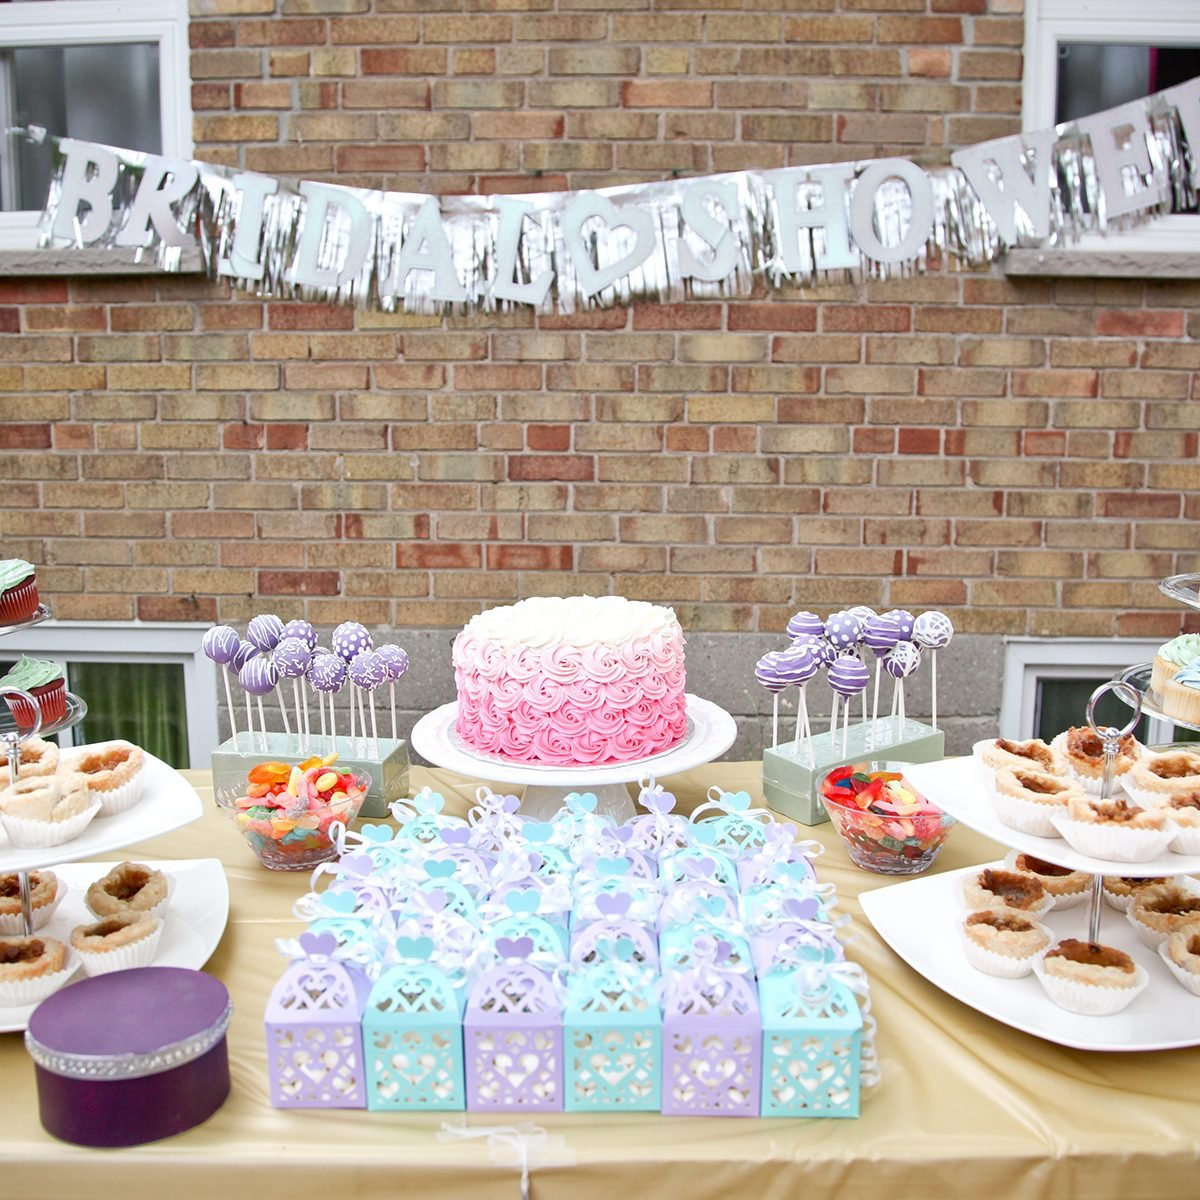 8 Tricks For Throwing A Bridal Shower On A Budget